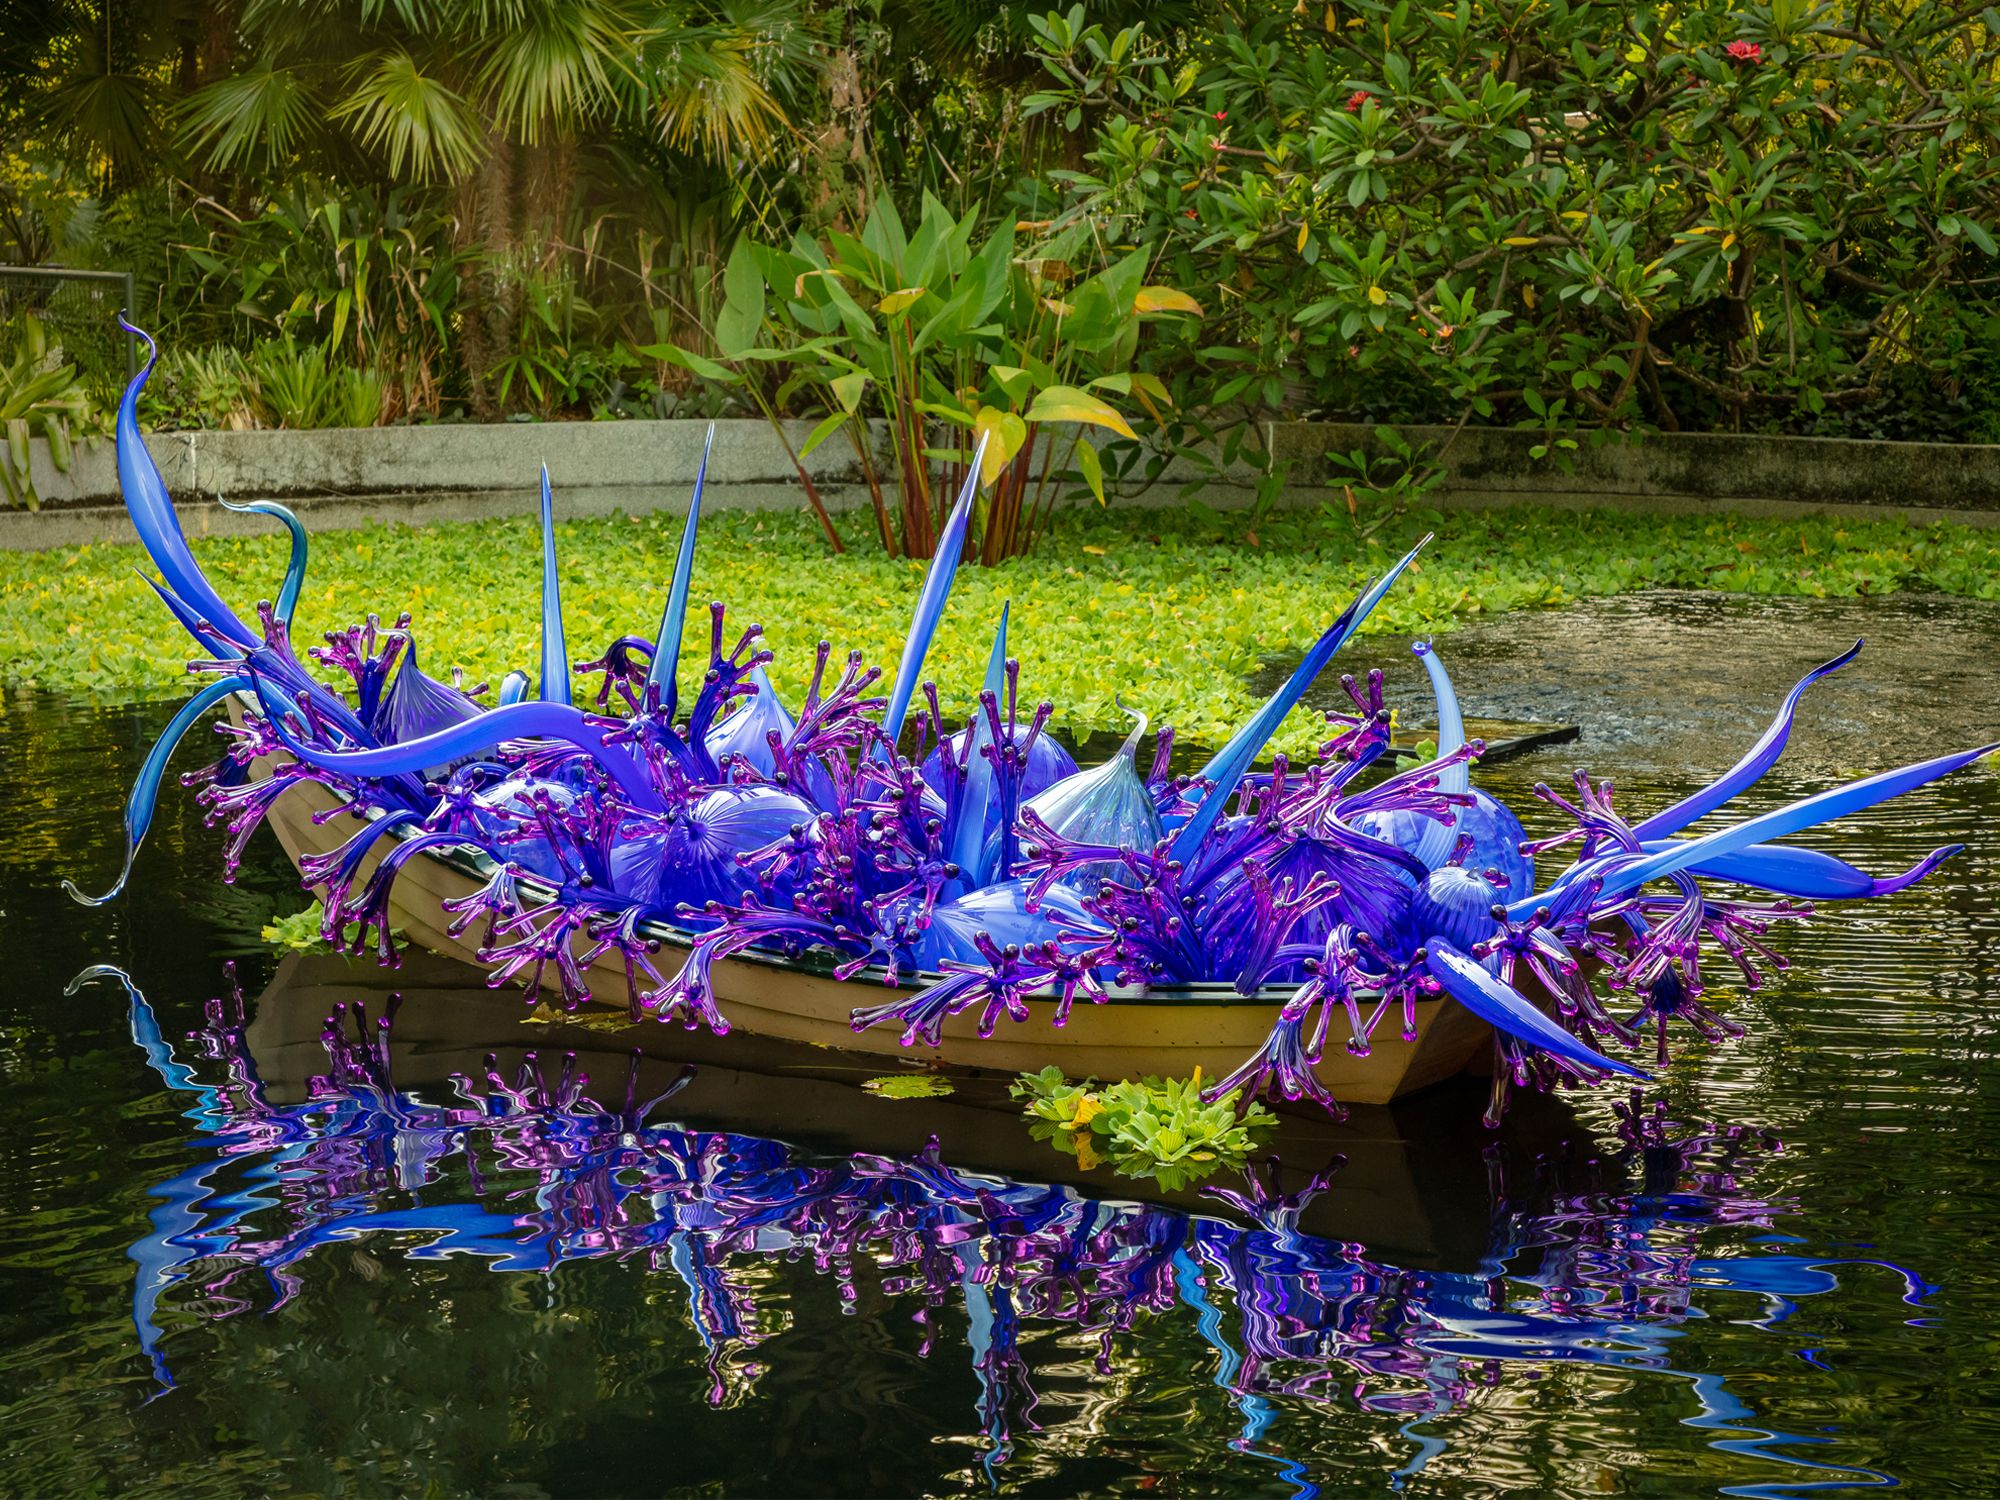 5 Highlights From the Dale Chihuly Exhibition at Gardens by the Bay